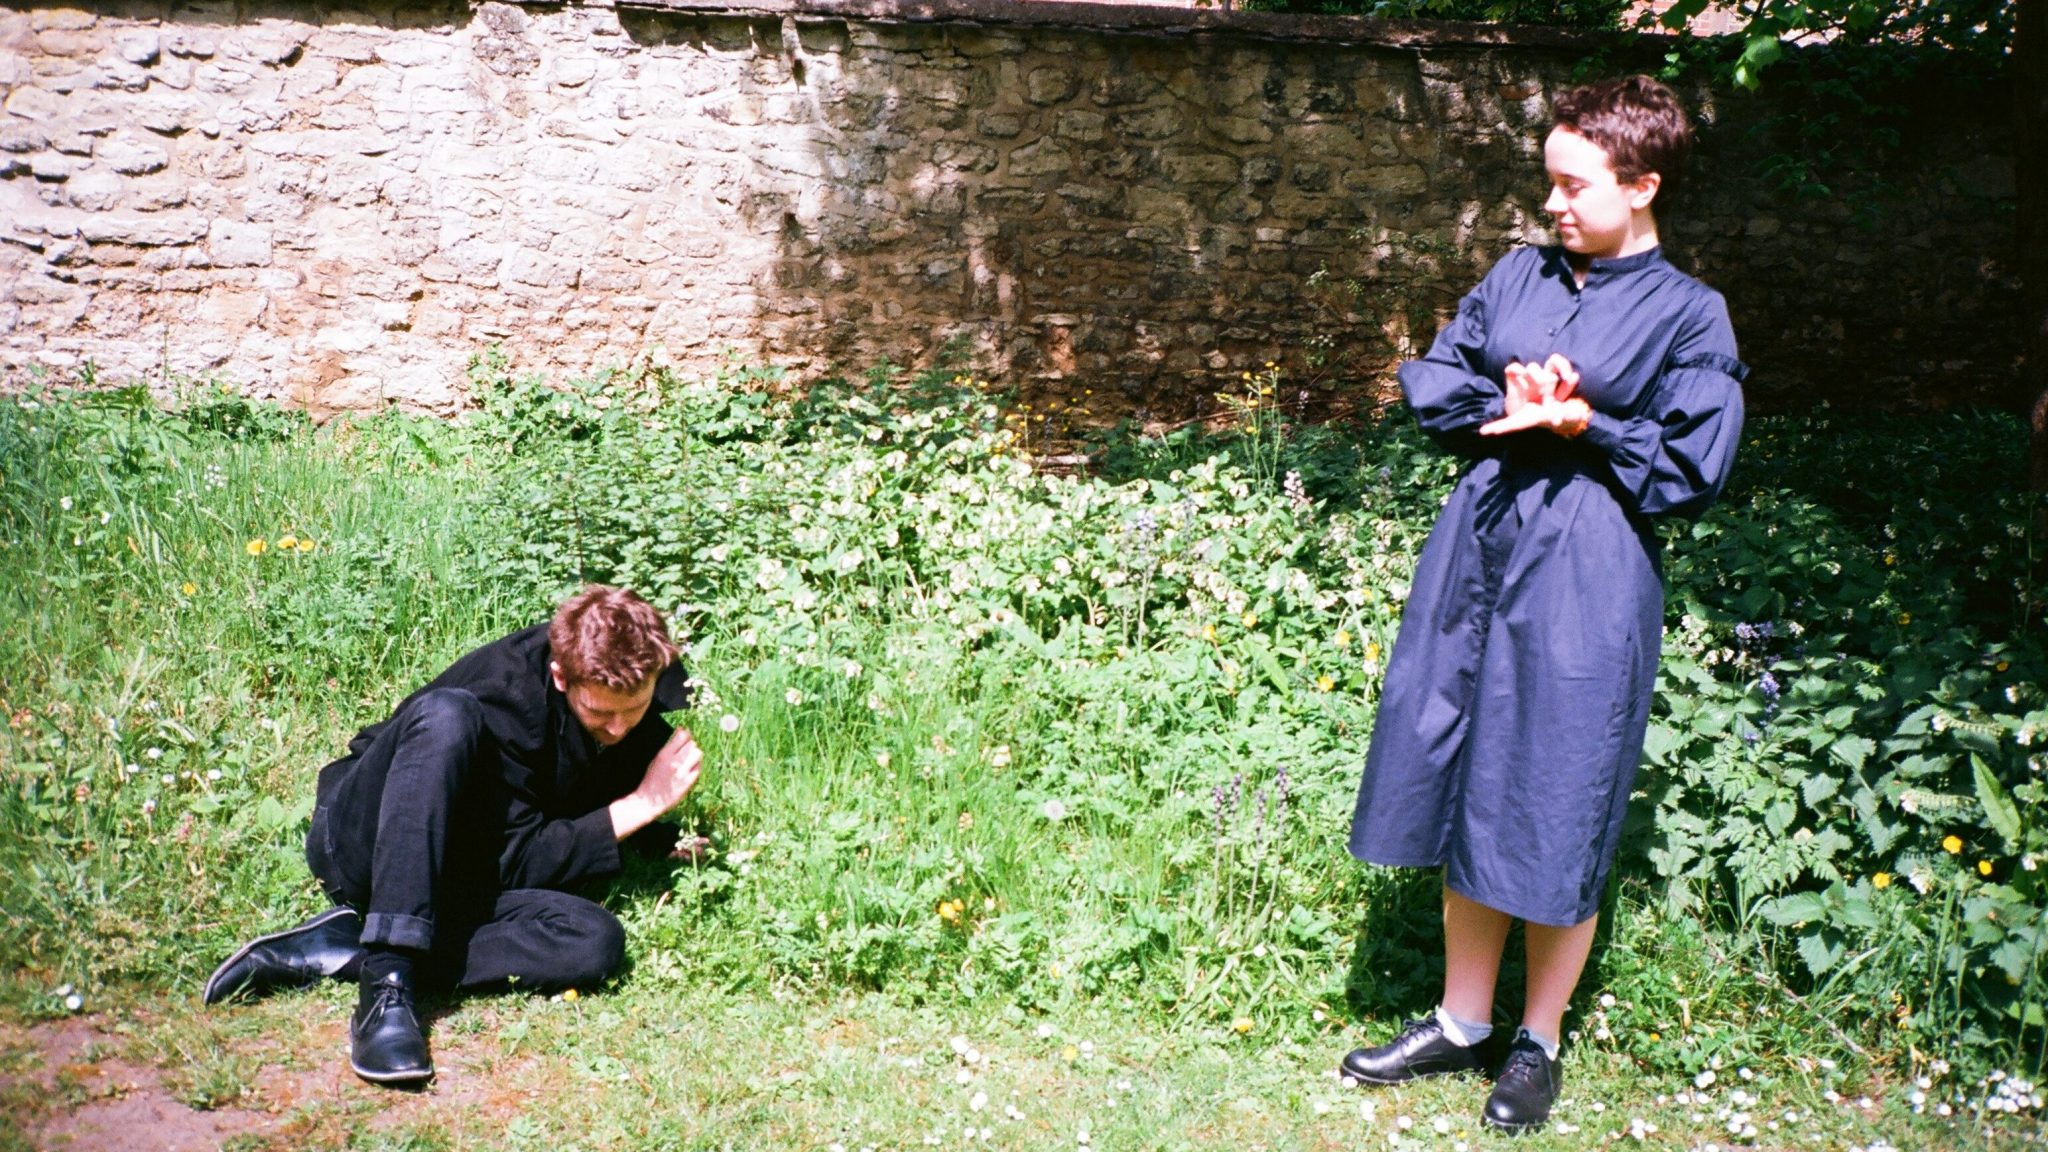 A man huddles on the grass with a woman looking over him